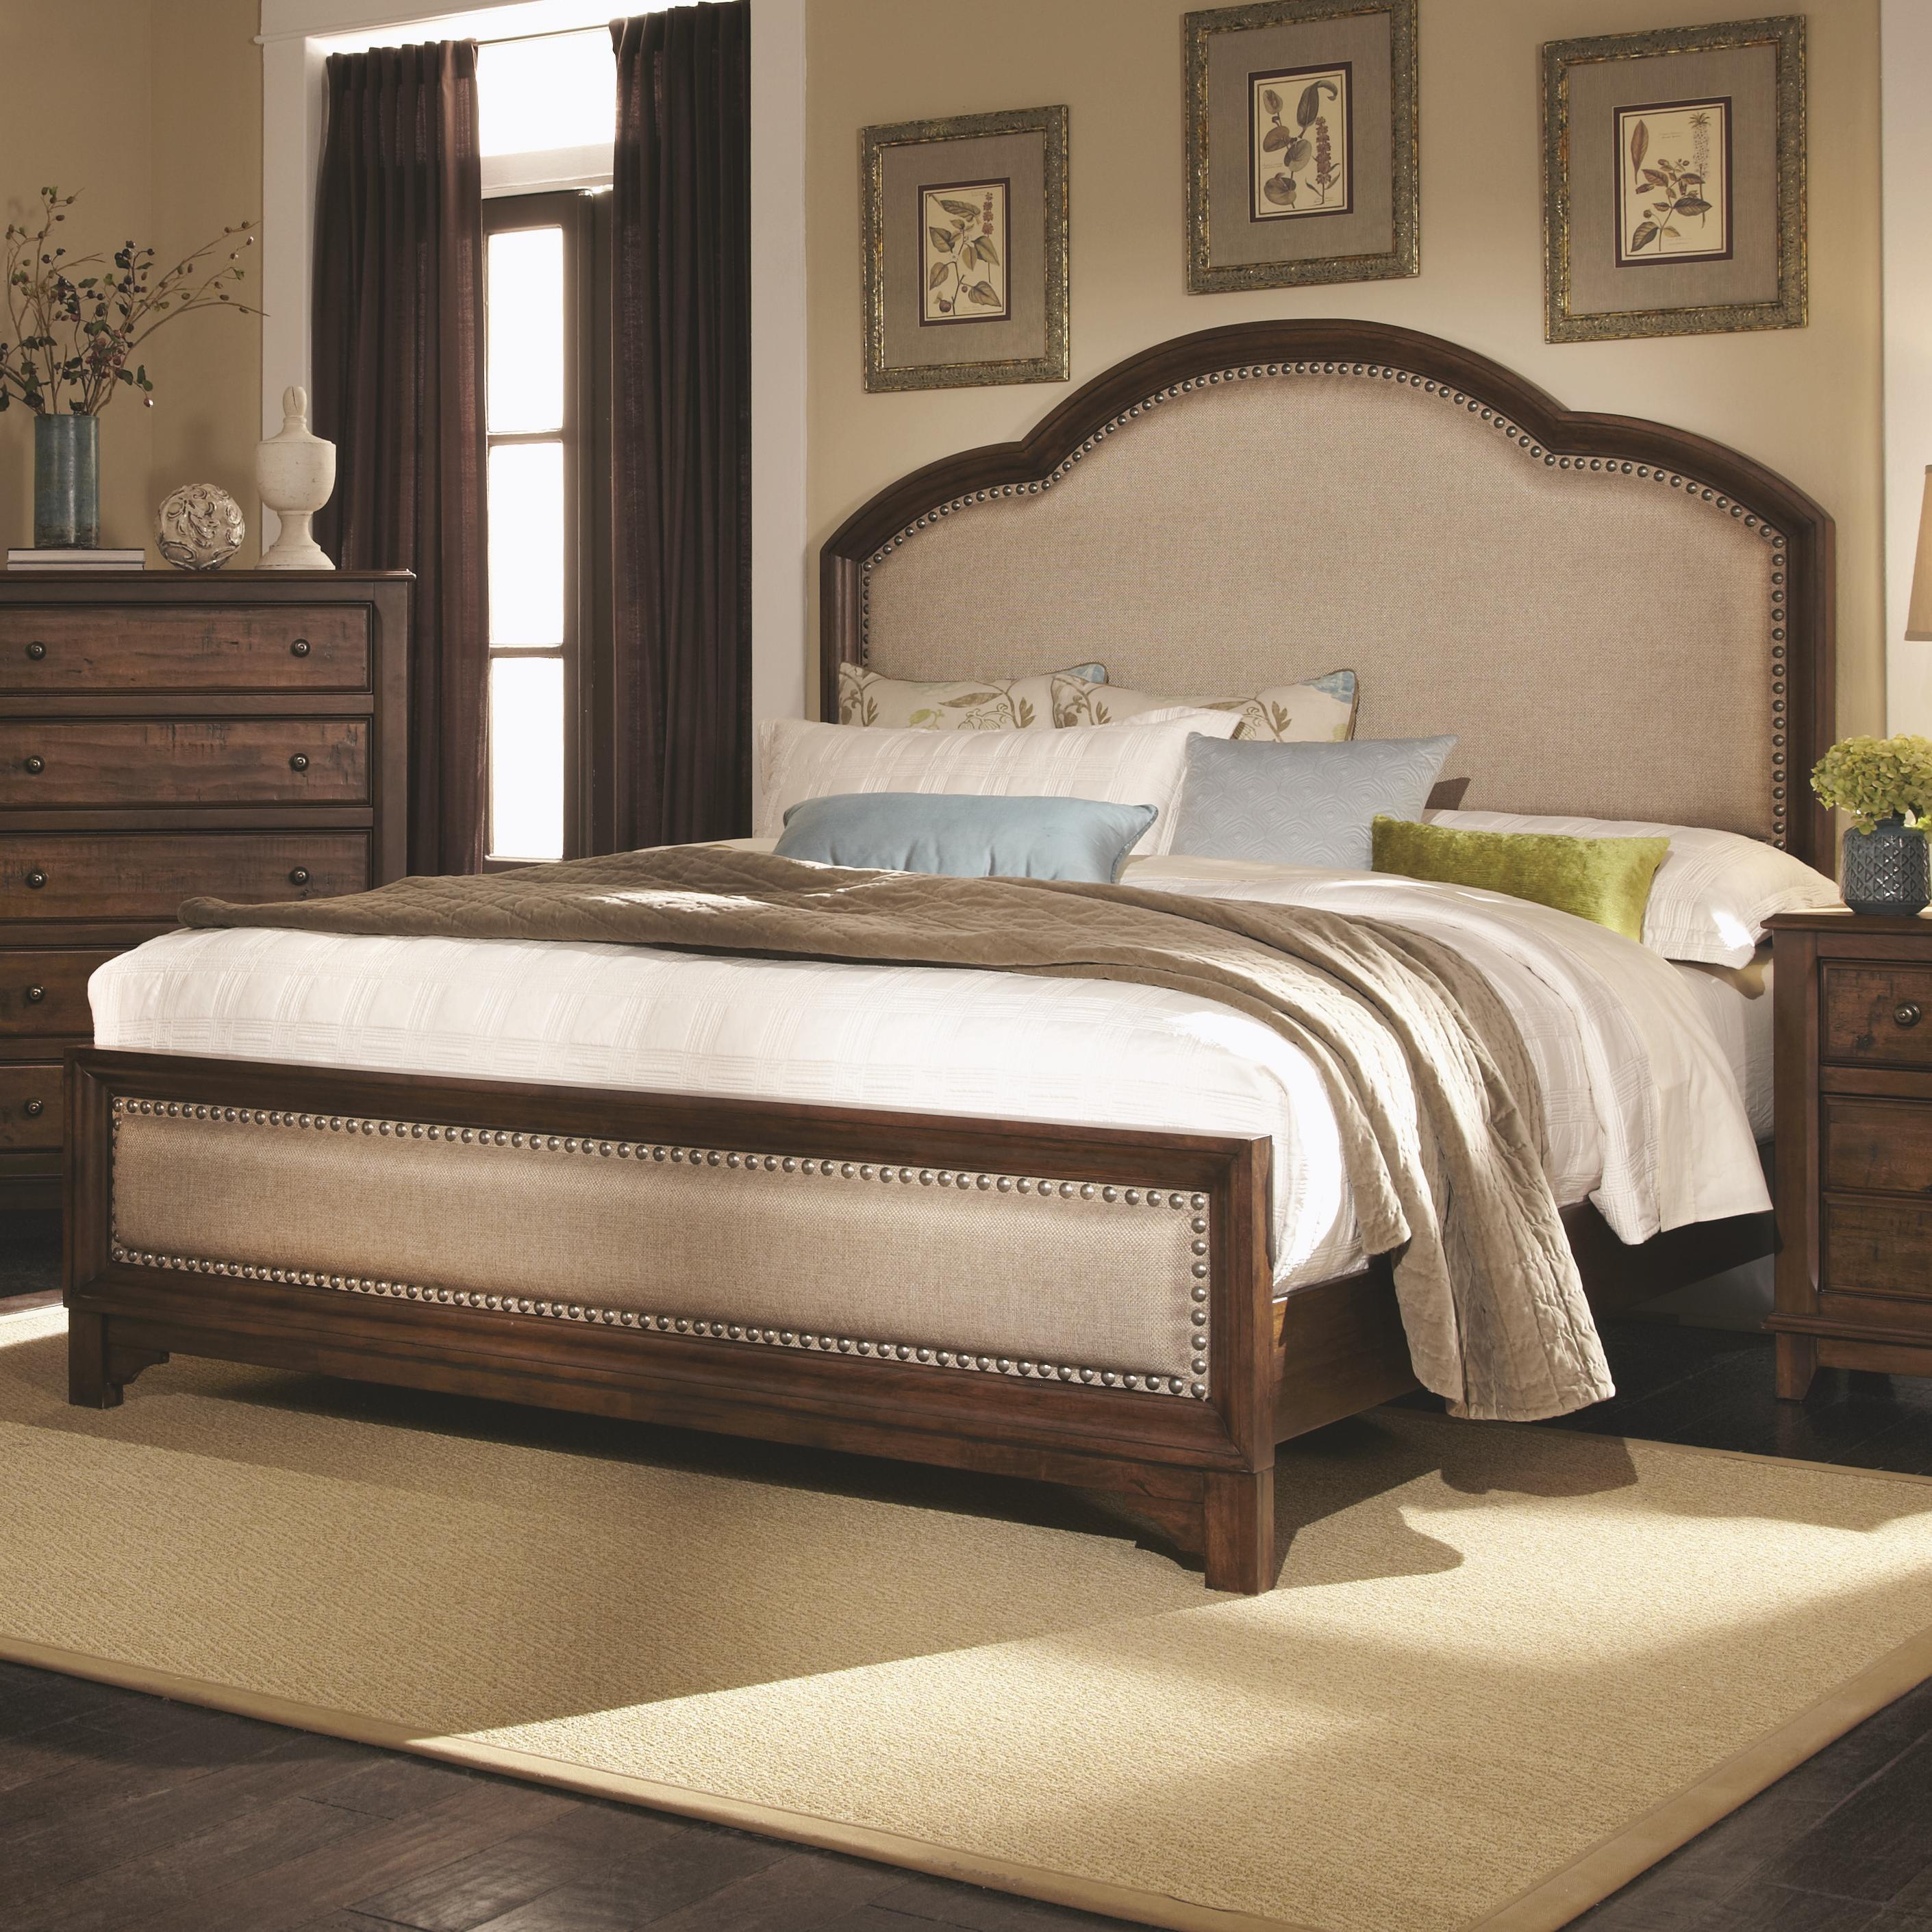 Casual King Upholstered Bed